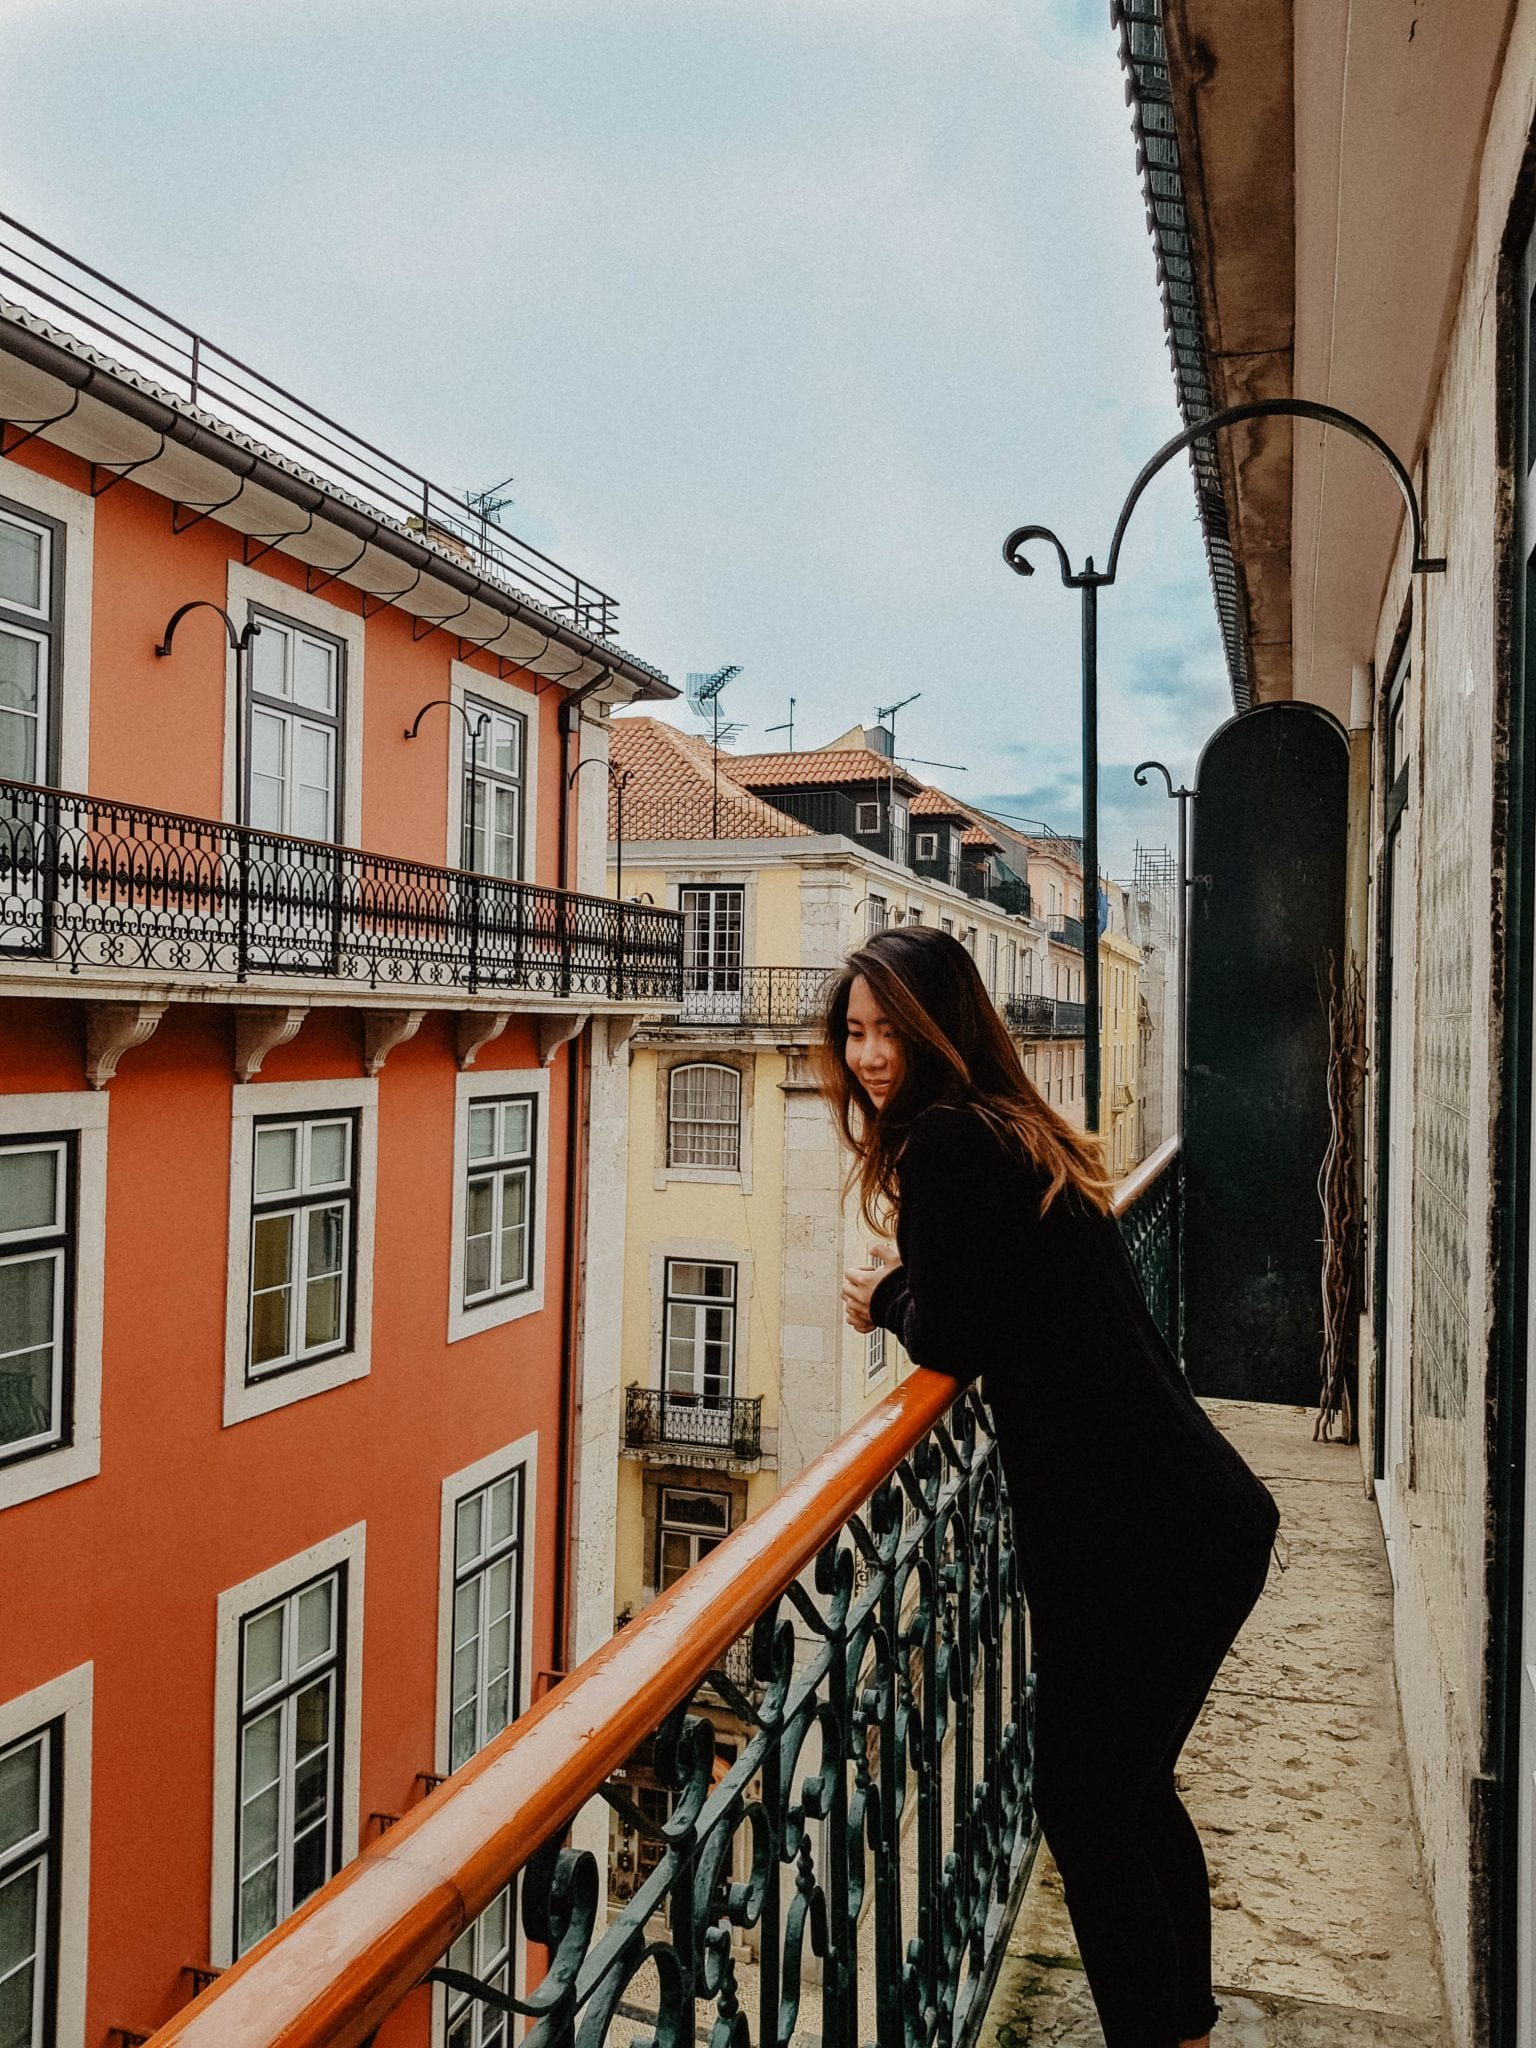 Lisbon Airbnb - Get your $35 Airbnb Coupon Code!